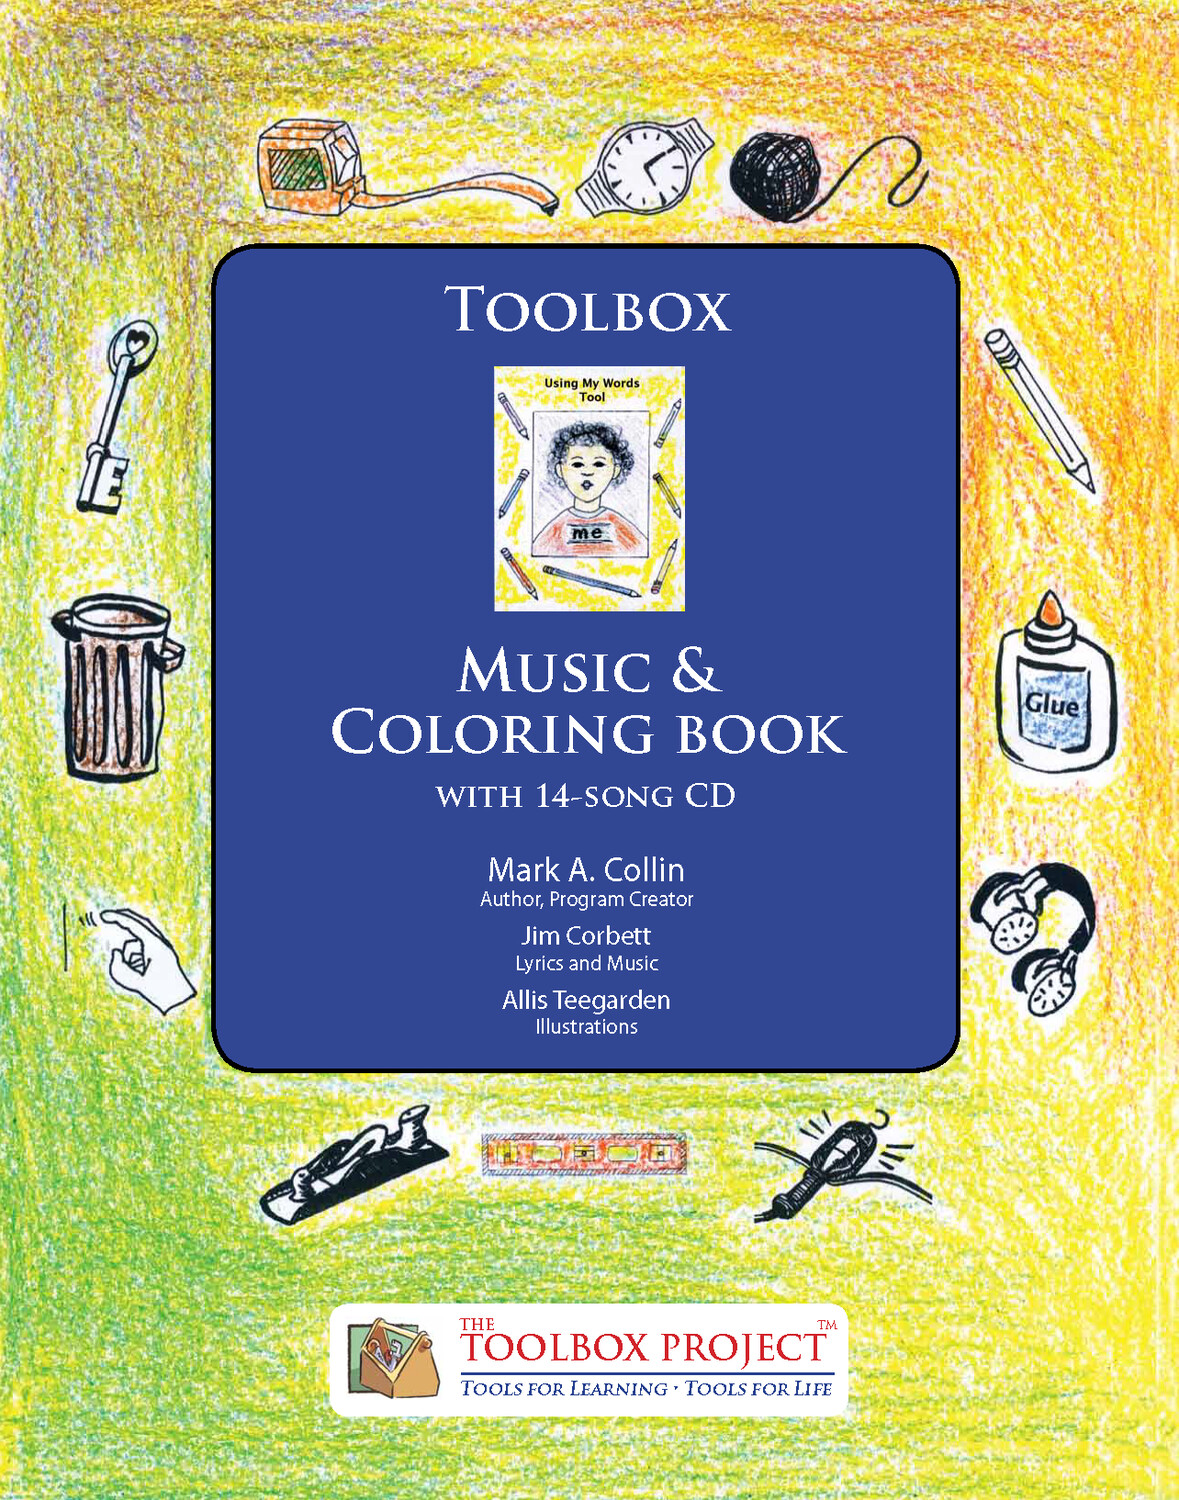 The Toolbox Coloring Book and CD 100books